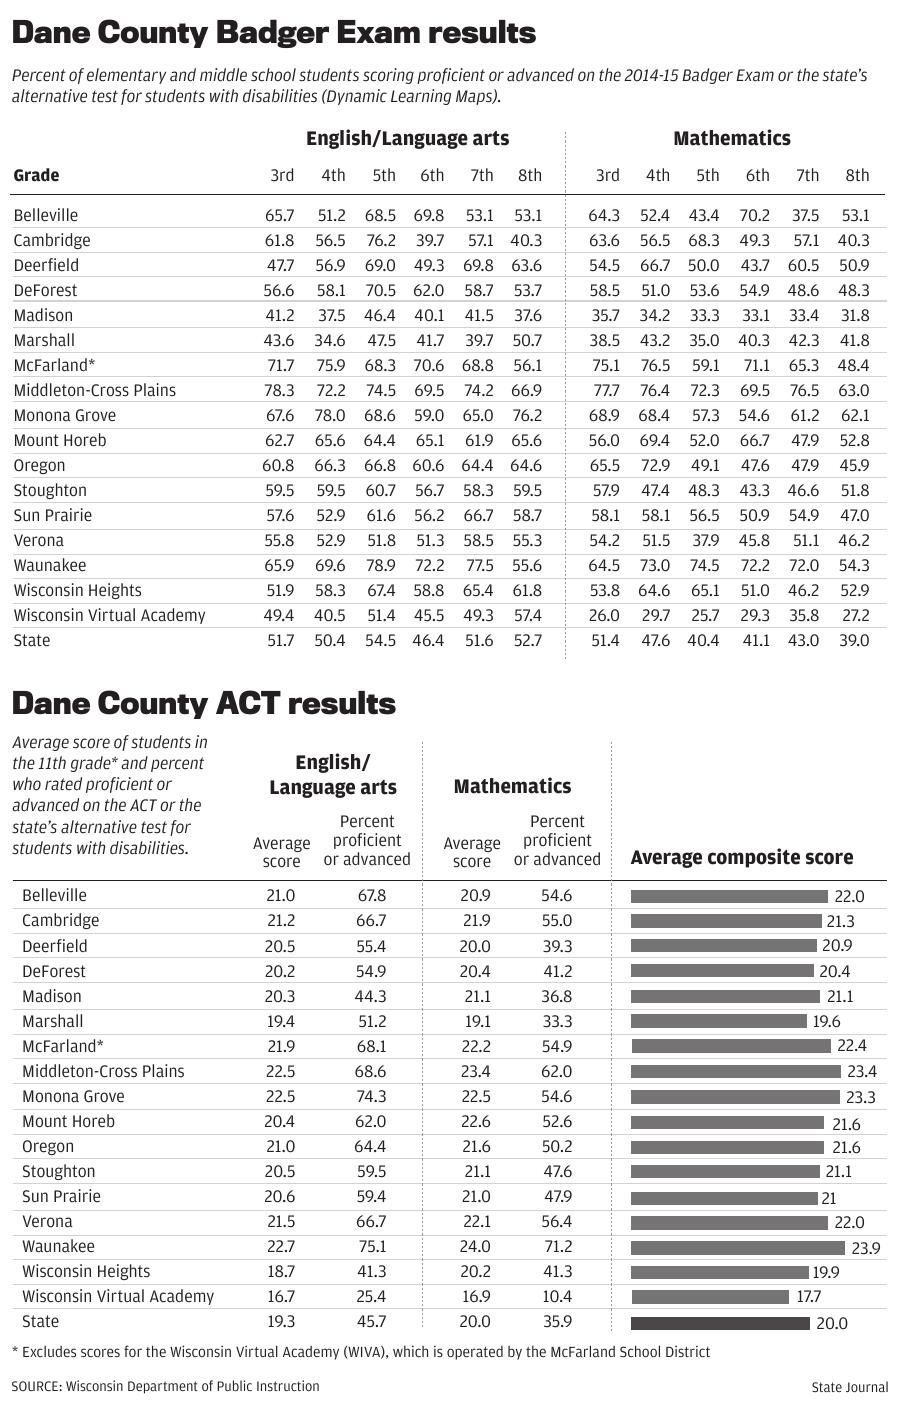 Dane County Badger Exam and ACT scores